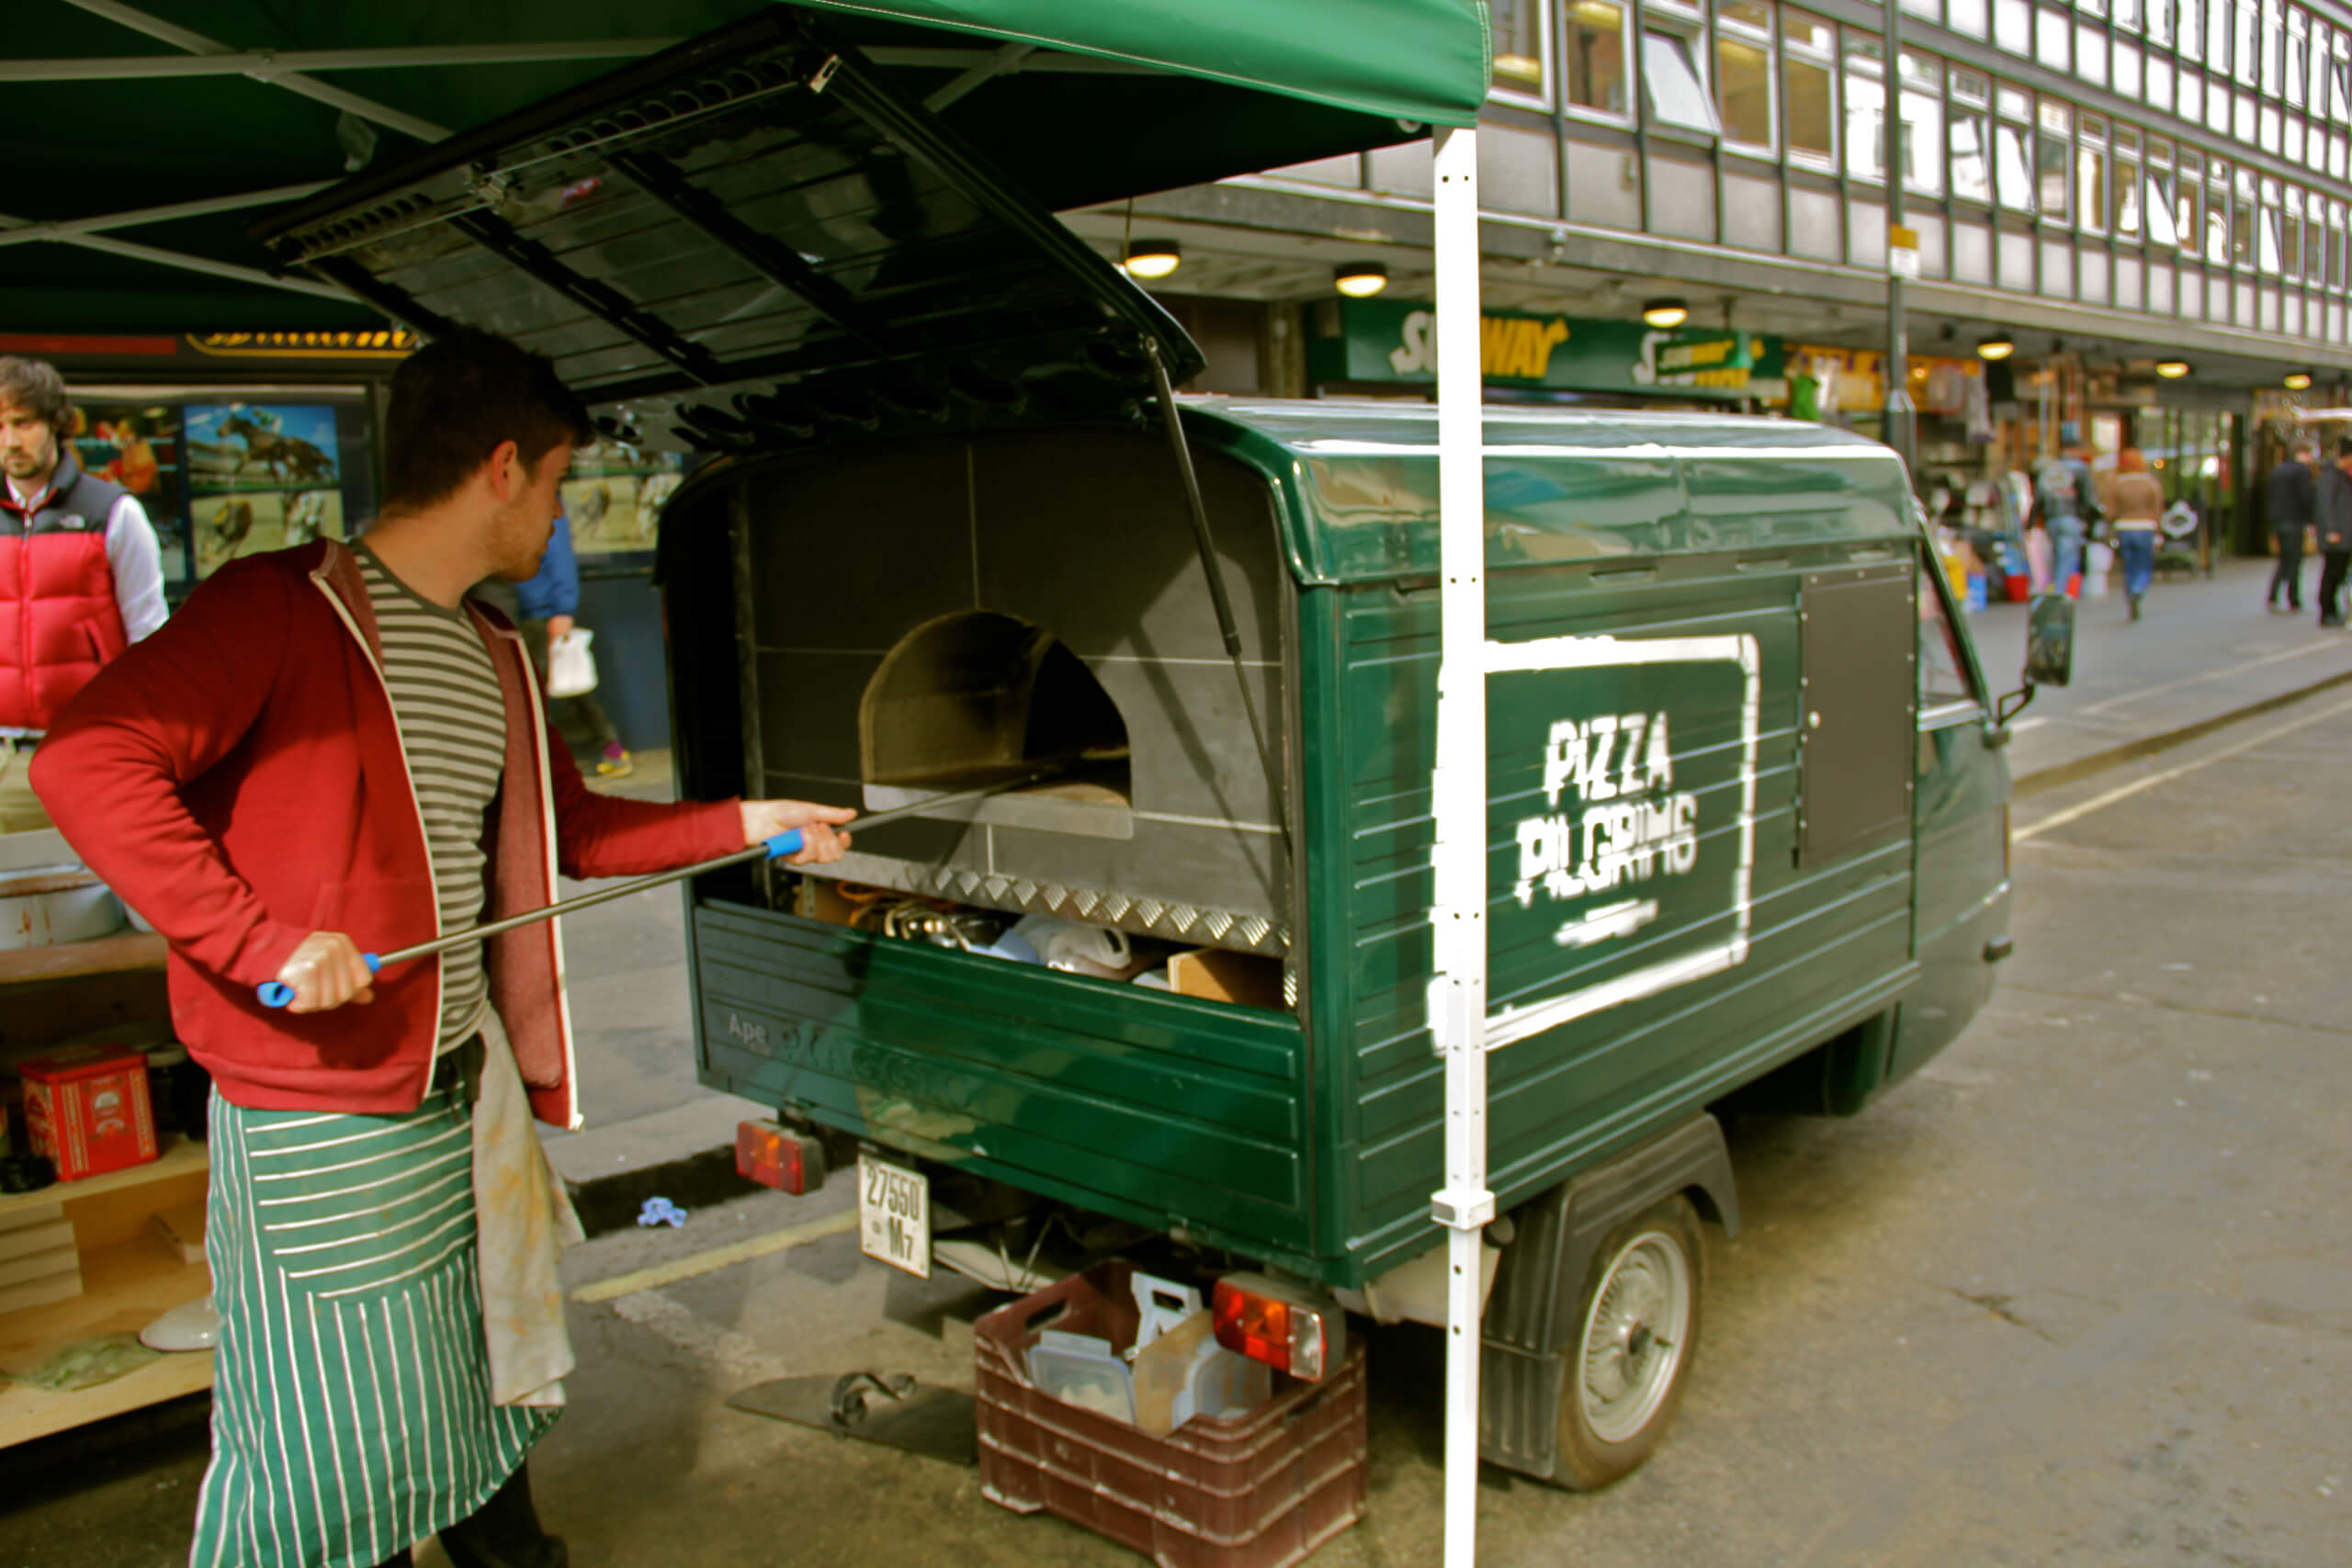 Pizza Pilgrims van, Start Your Own Pizza Business